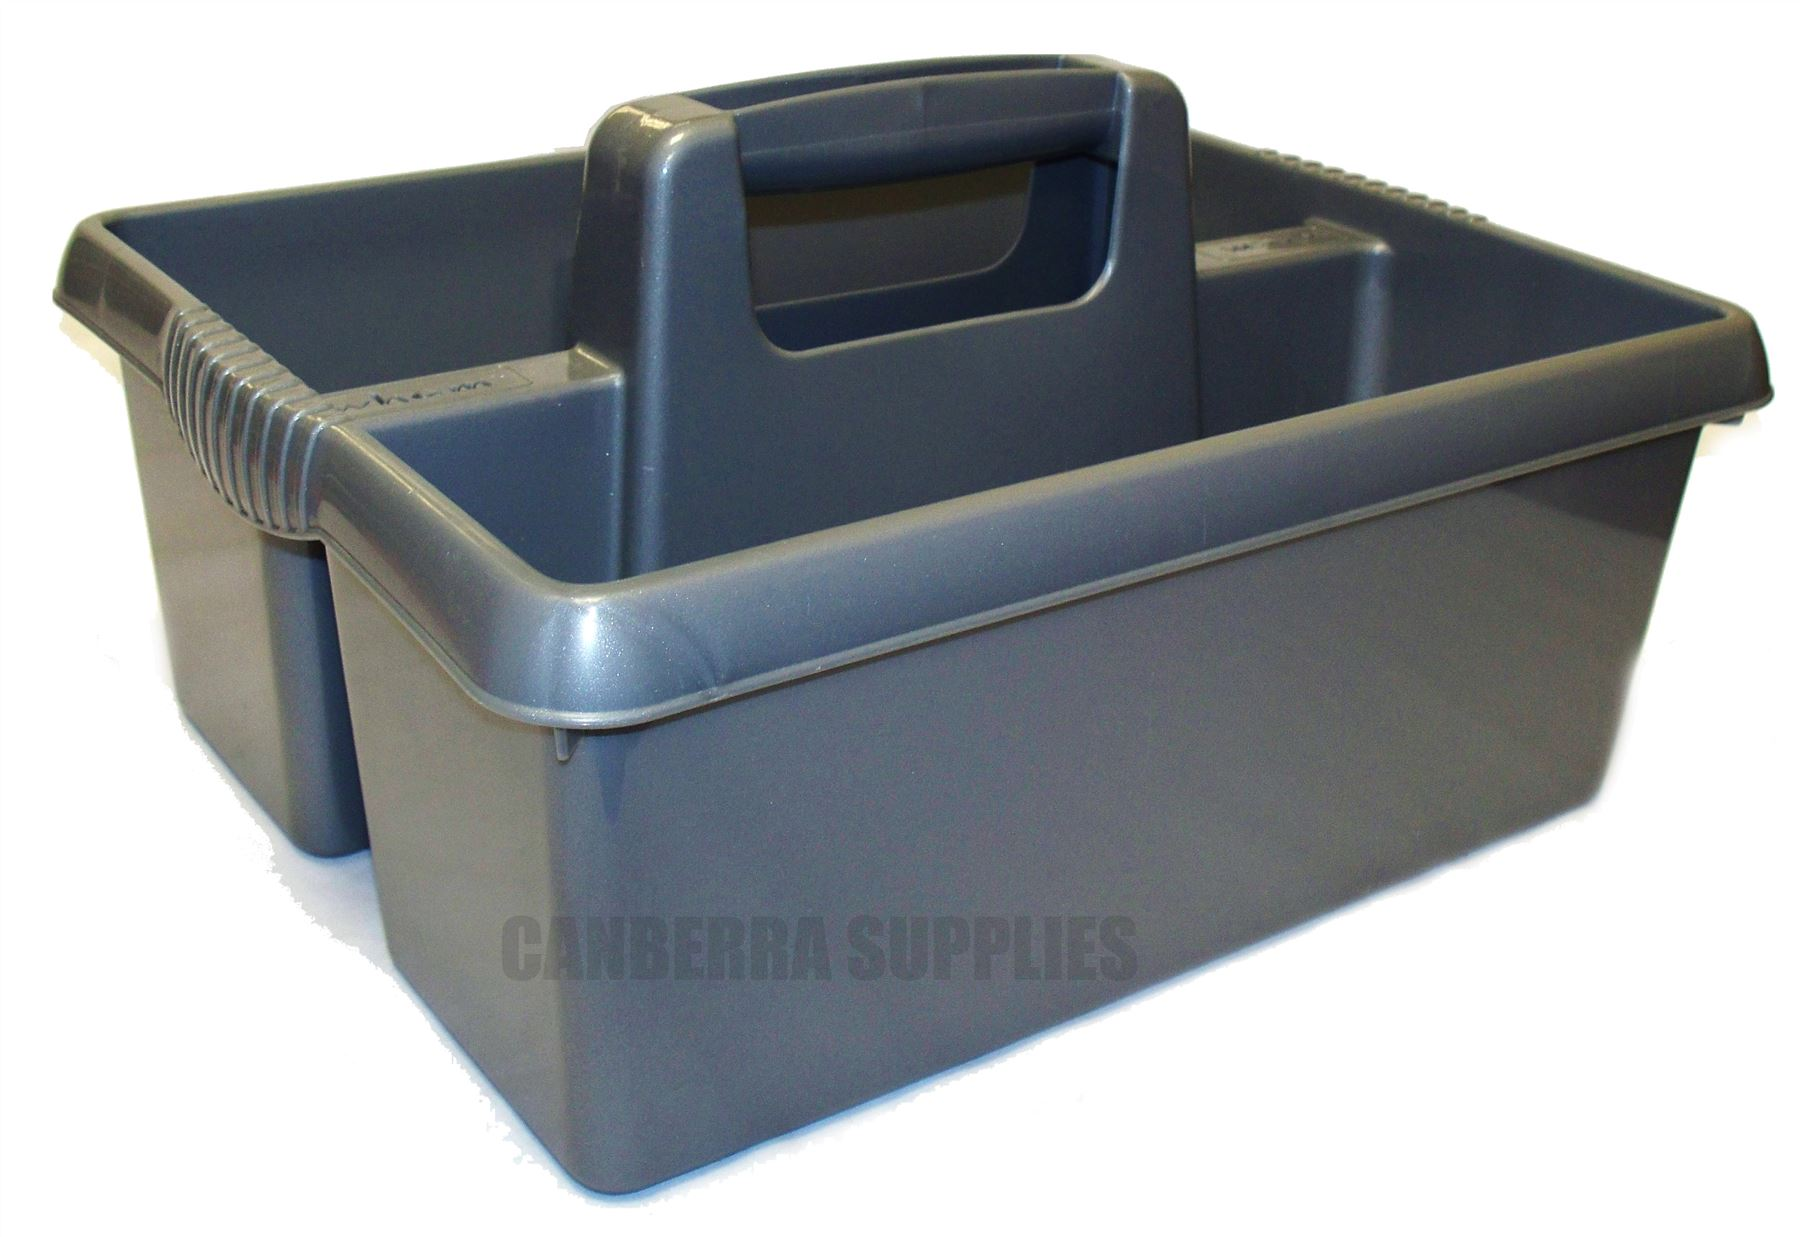 What To Store In Kitchen Caddy